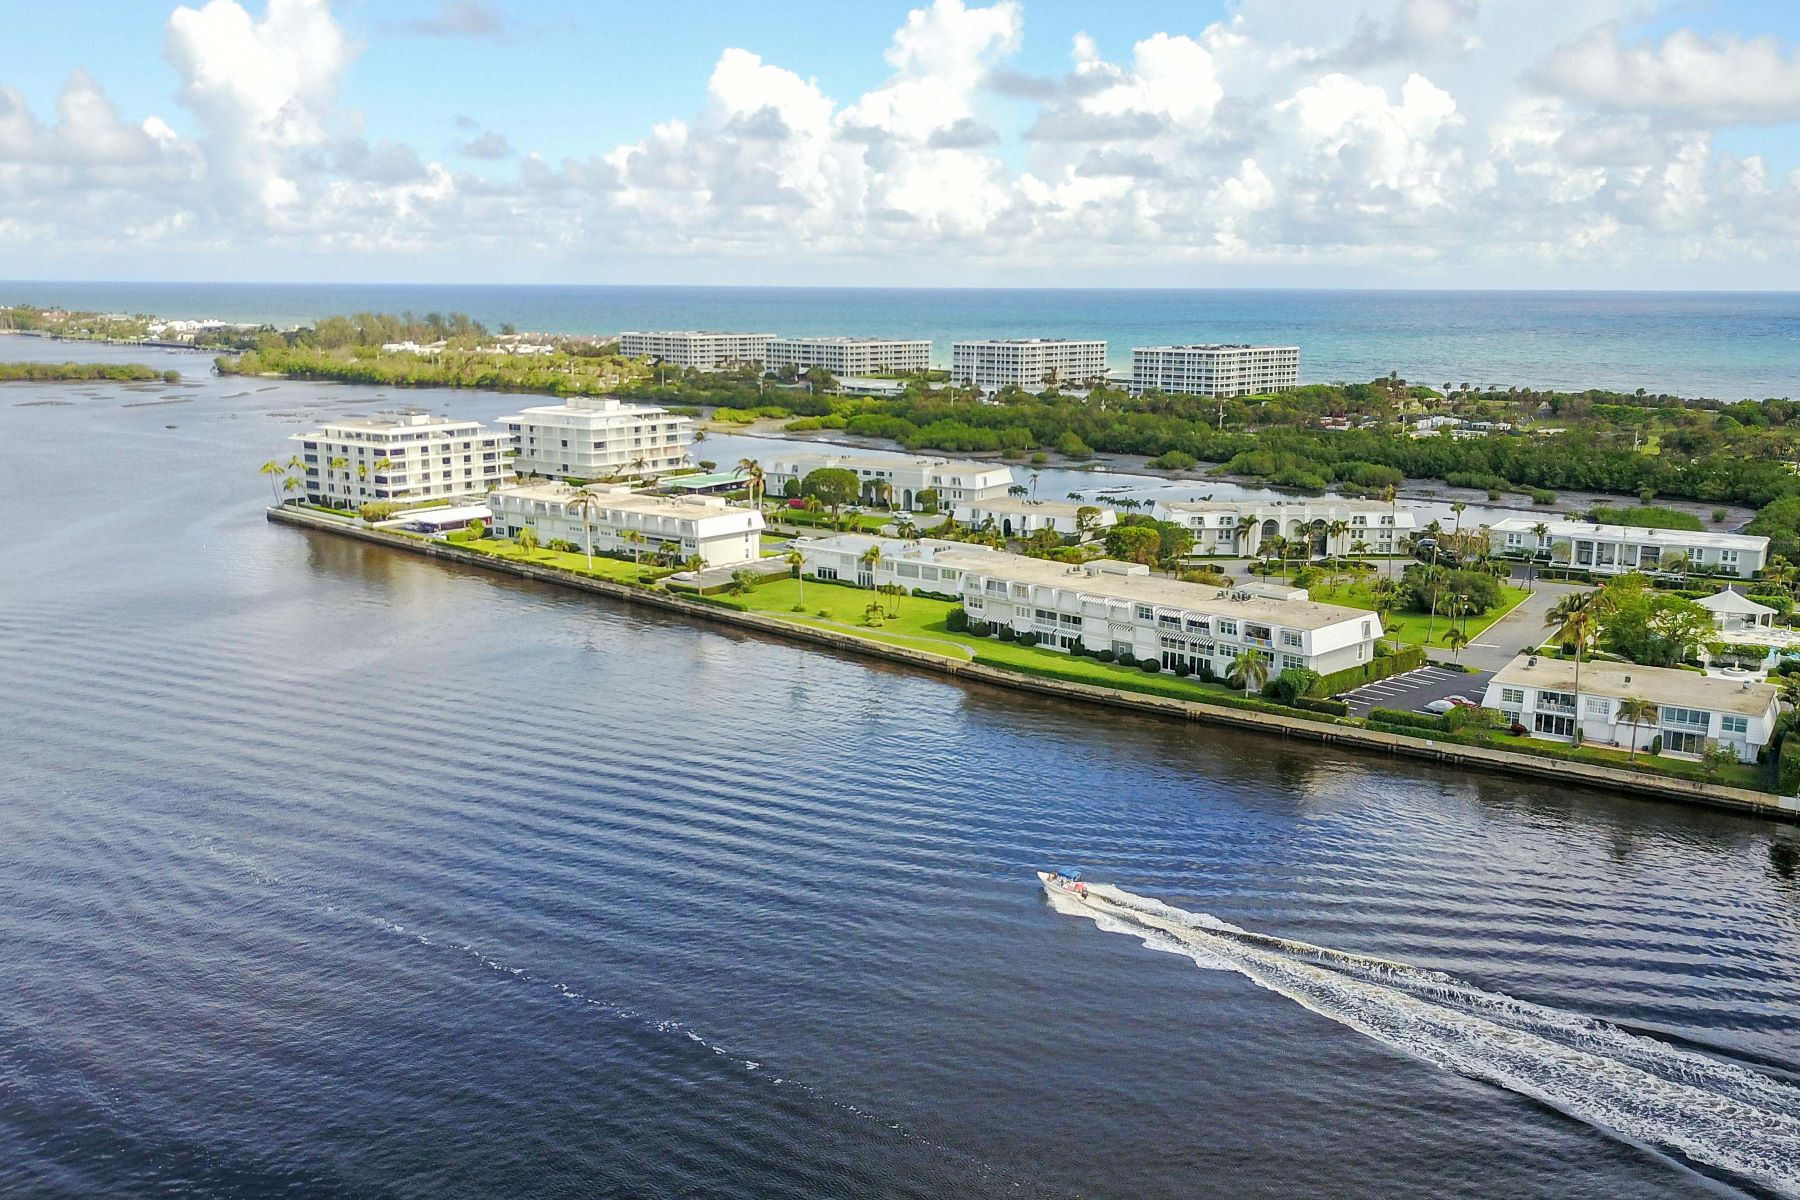 Additional photo for property listing at Ibis Isle Condo 2180 Ibis Isle Rd # 2 Palm Beach, Florida 33480 Estados Unidos